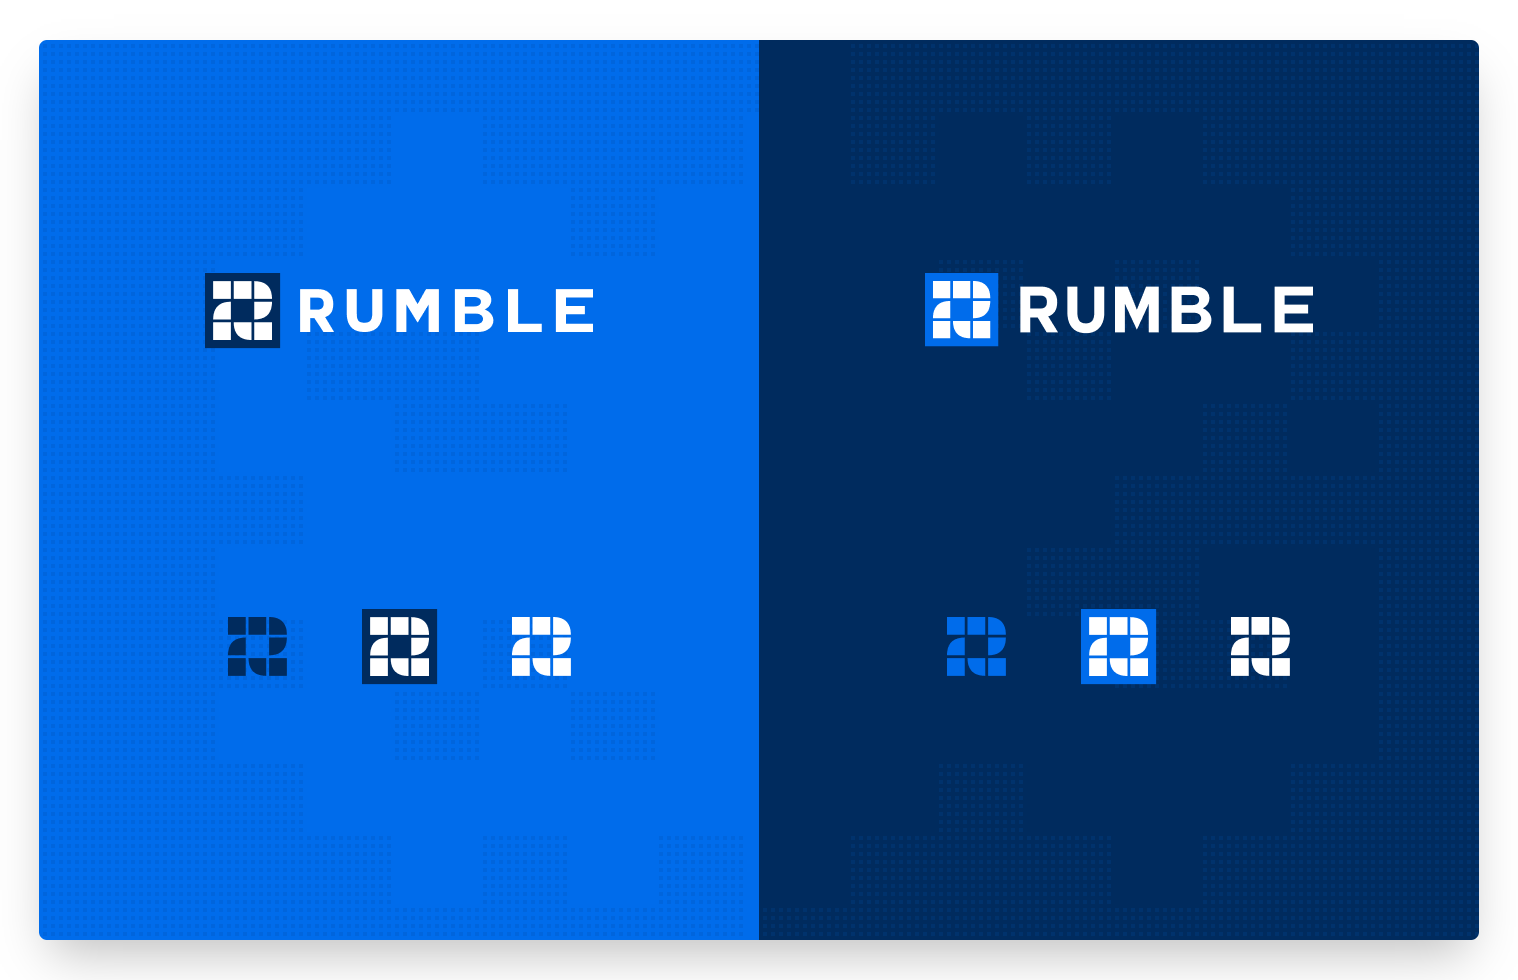 A slide that shows logos on a light blue and dark blue background for the company Rumble.